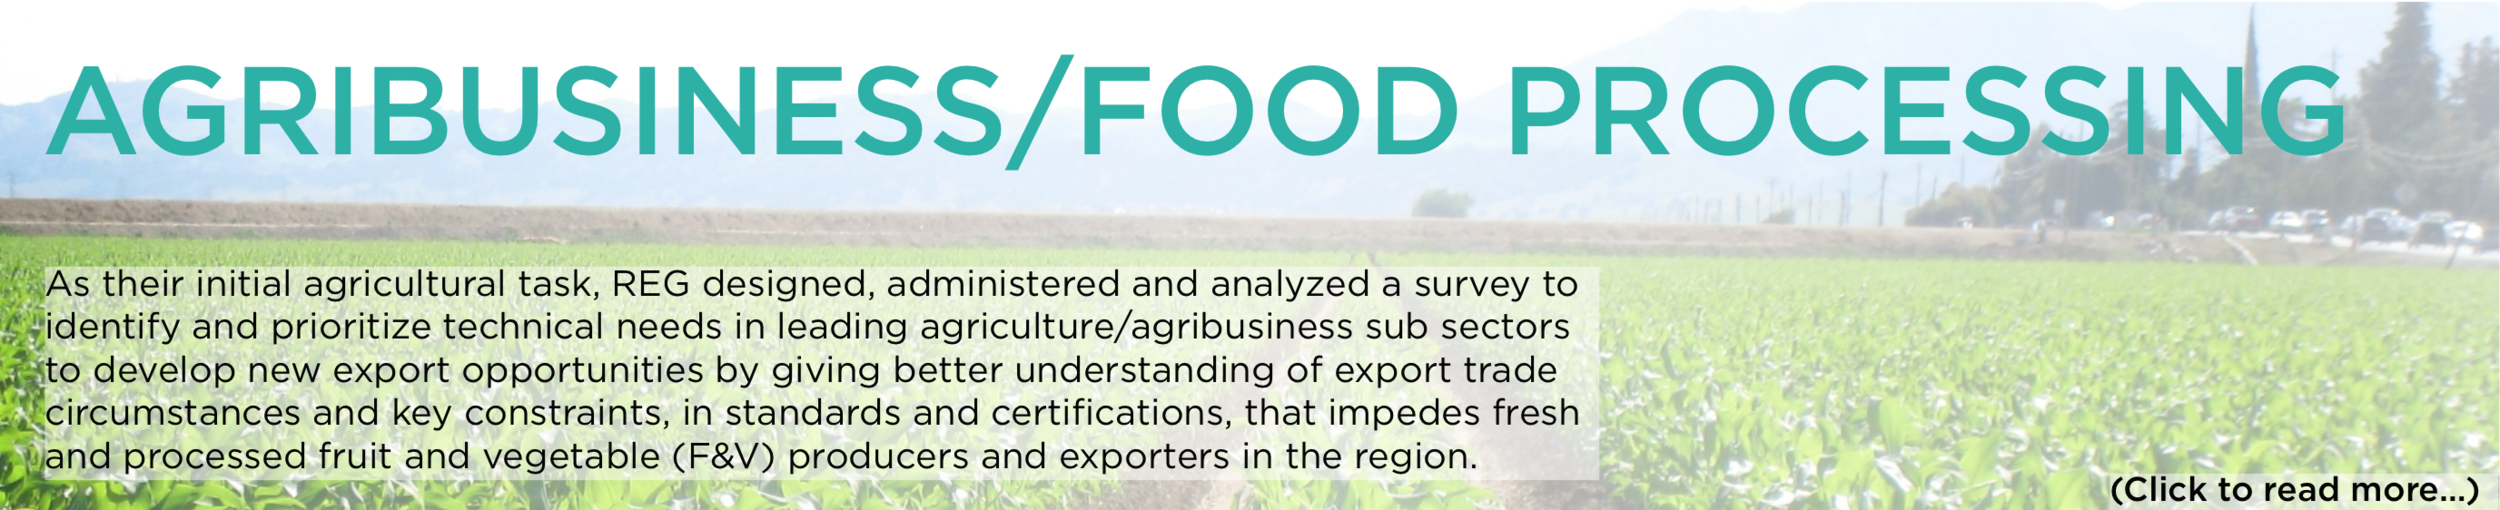 Banner - Agriculture:Food Processing.png